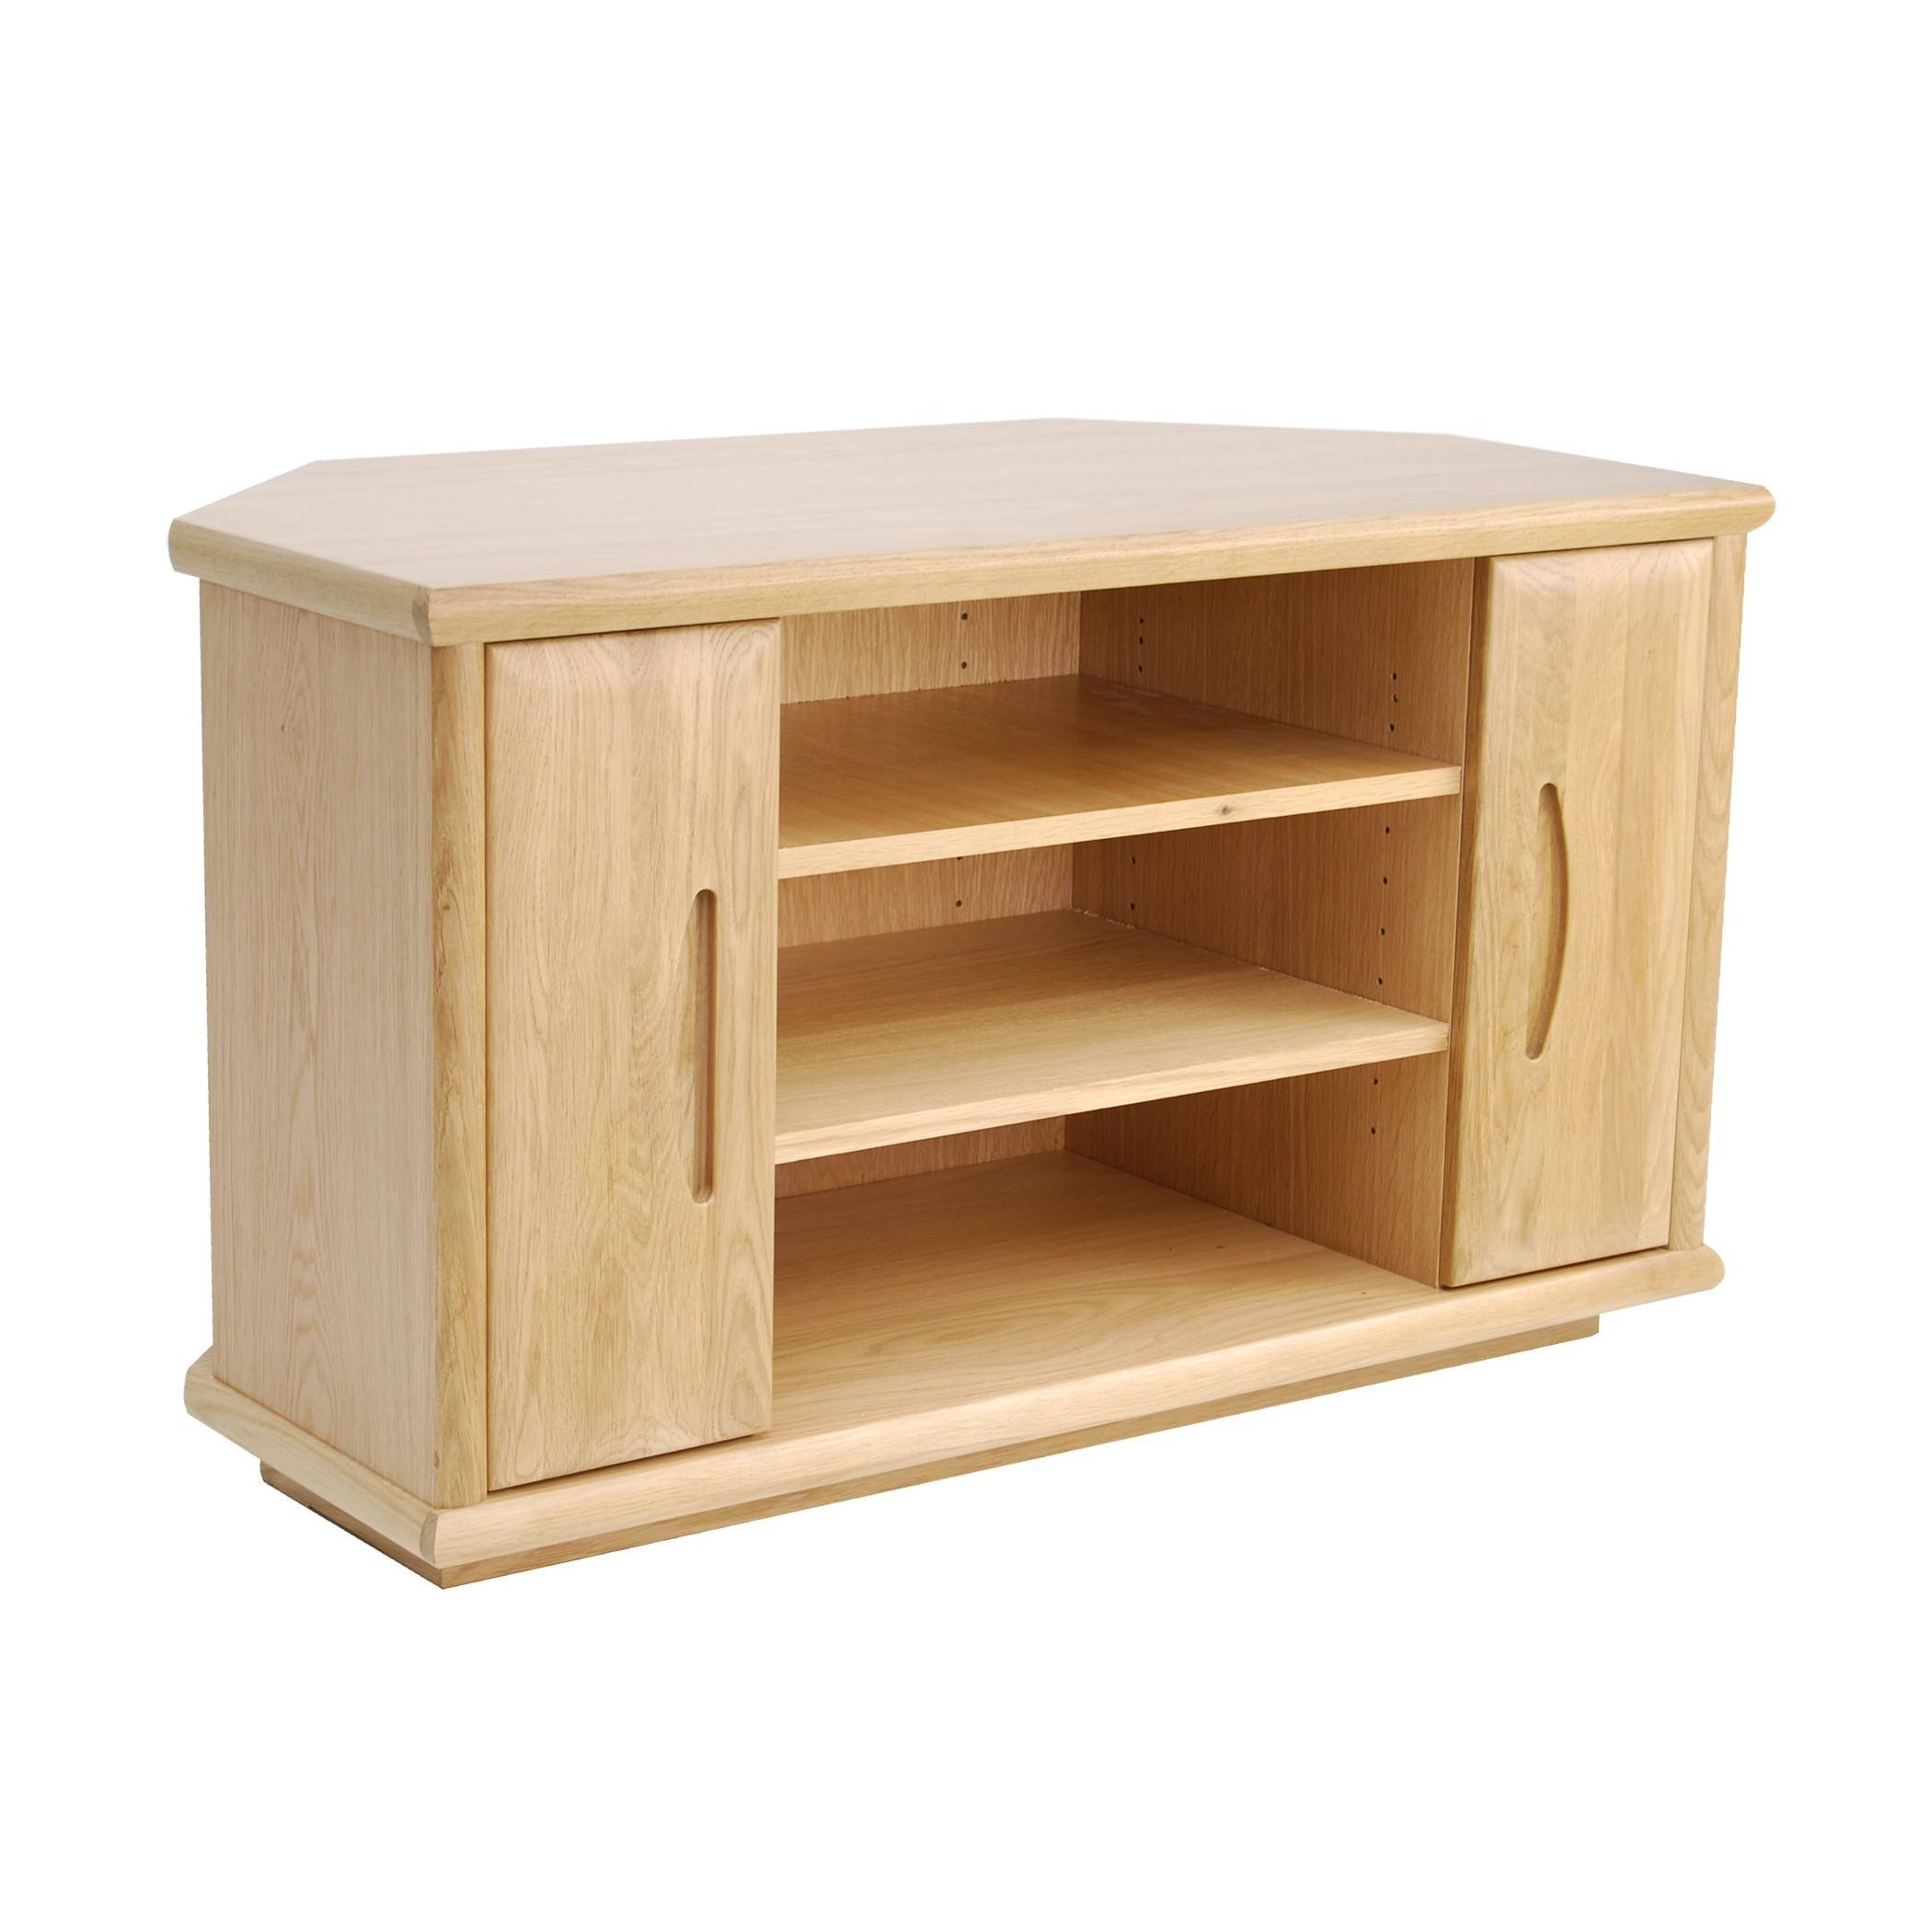 Oak Corner Tv Stand | Gola Furniture Uk inside Small Oak Corner Tv Stands (Image 5 of 15)